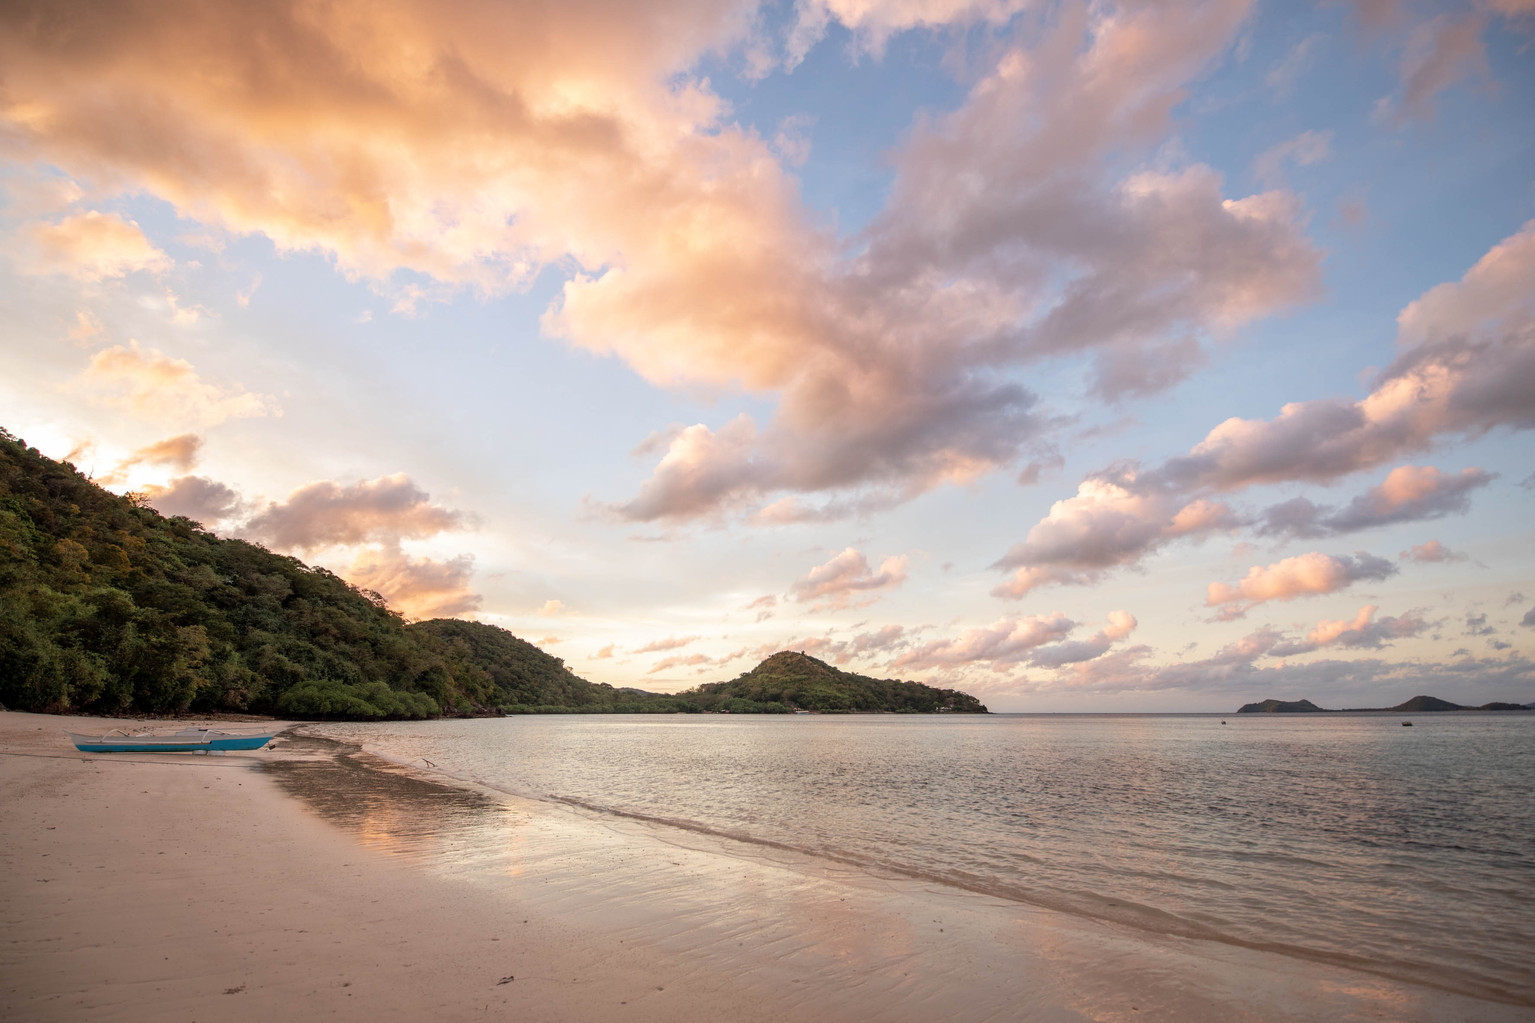 sunrise behind green mountains in the sand in the philippines